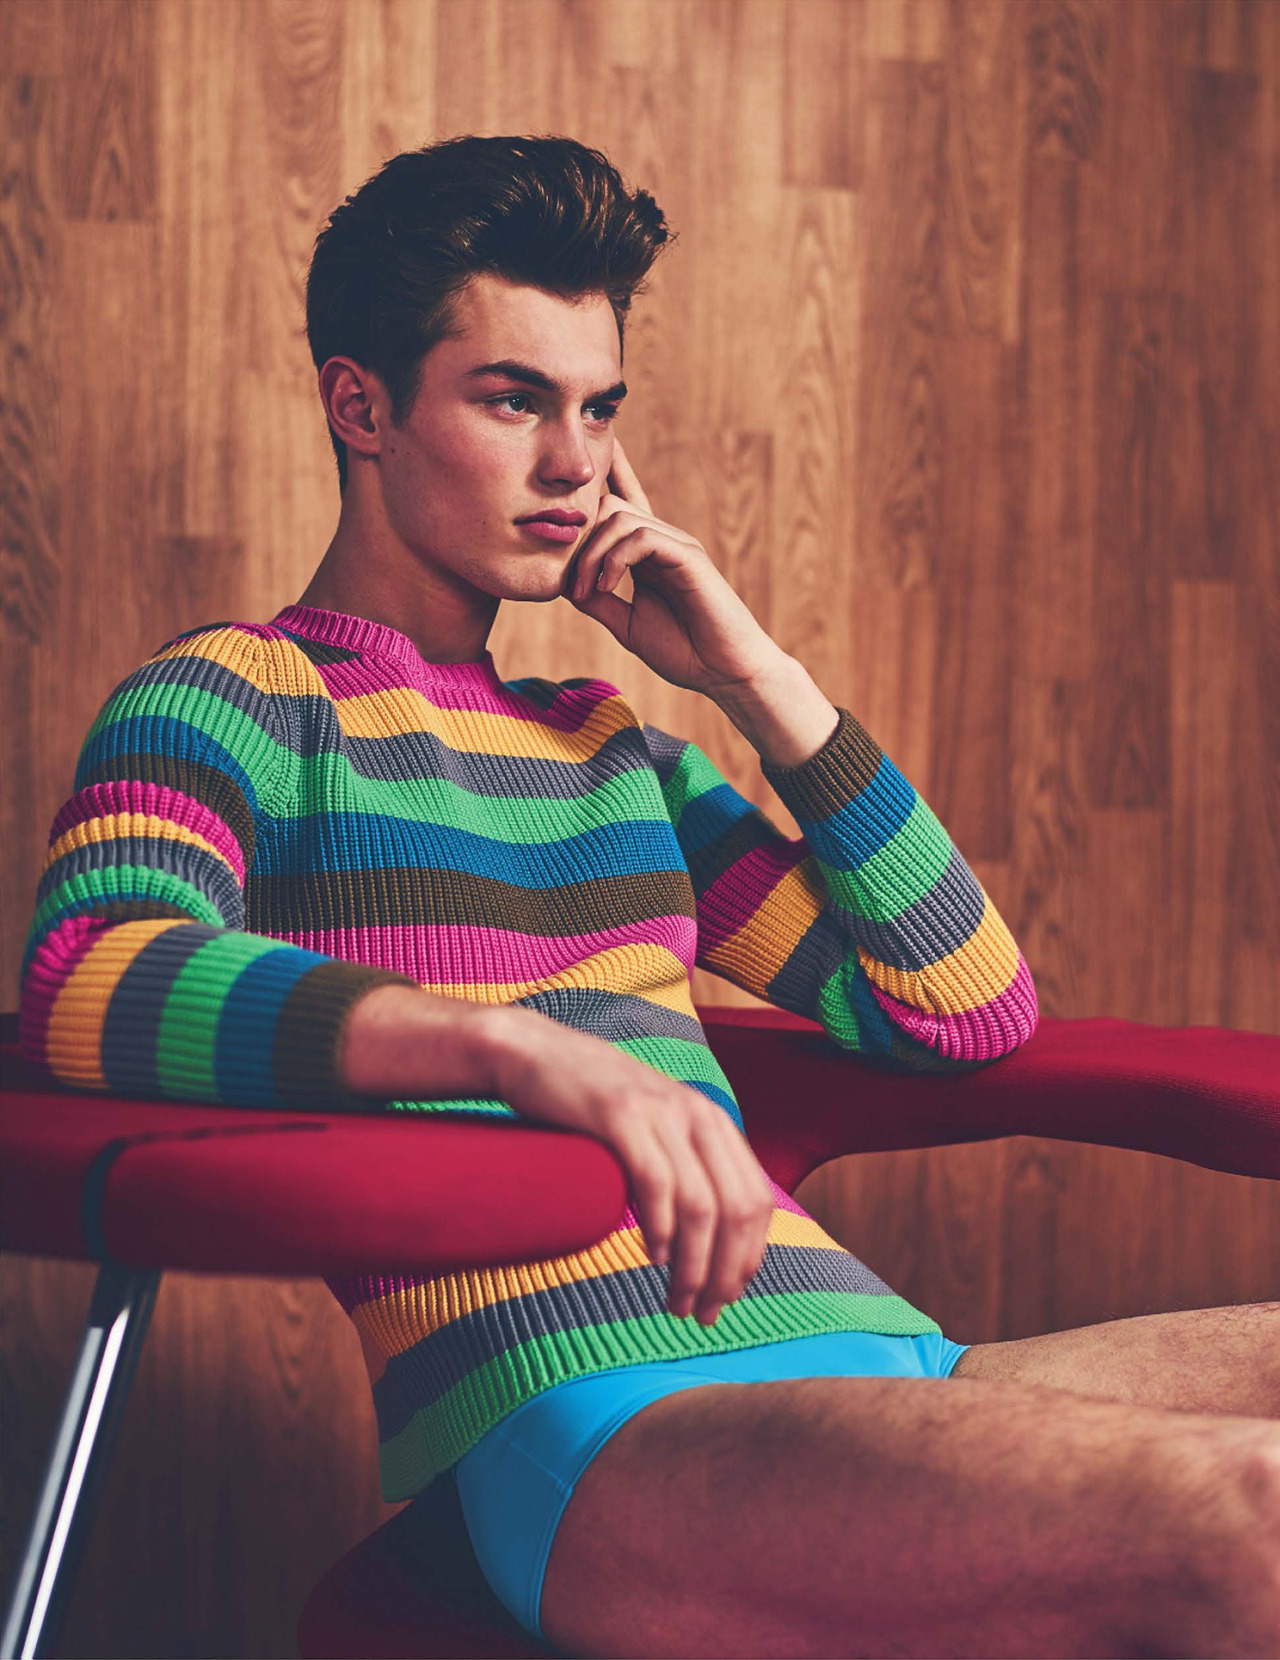 The independent Magazine releases March issue 2016 with beachwear story starring by supermodels and pals Tommy Marr and Kit Butler, styled by Lee Holmes.